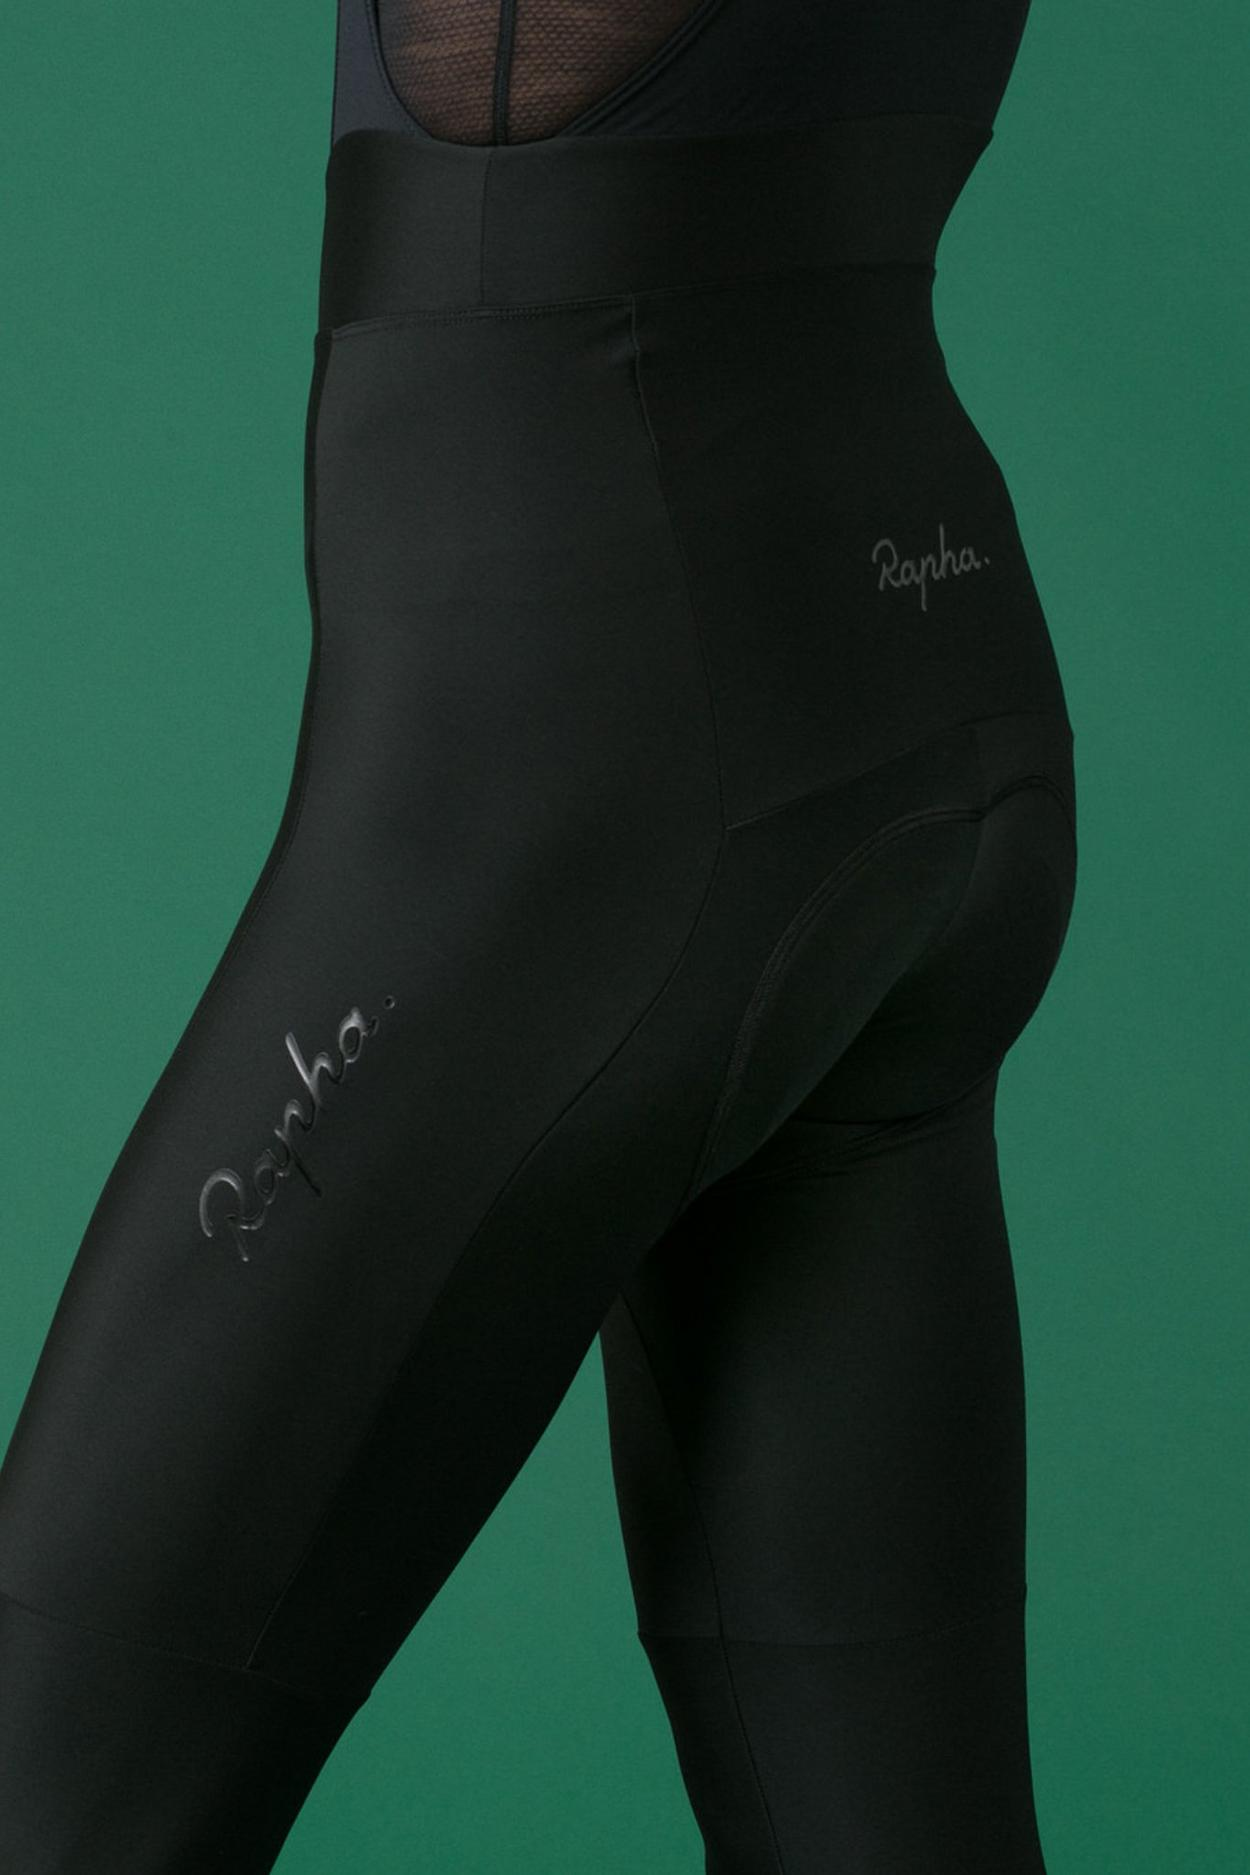 Rapha_Men_s_Core_Winter_Tights_With_Pad_Grid_2